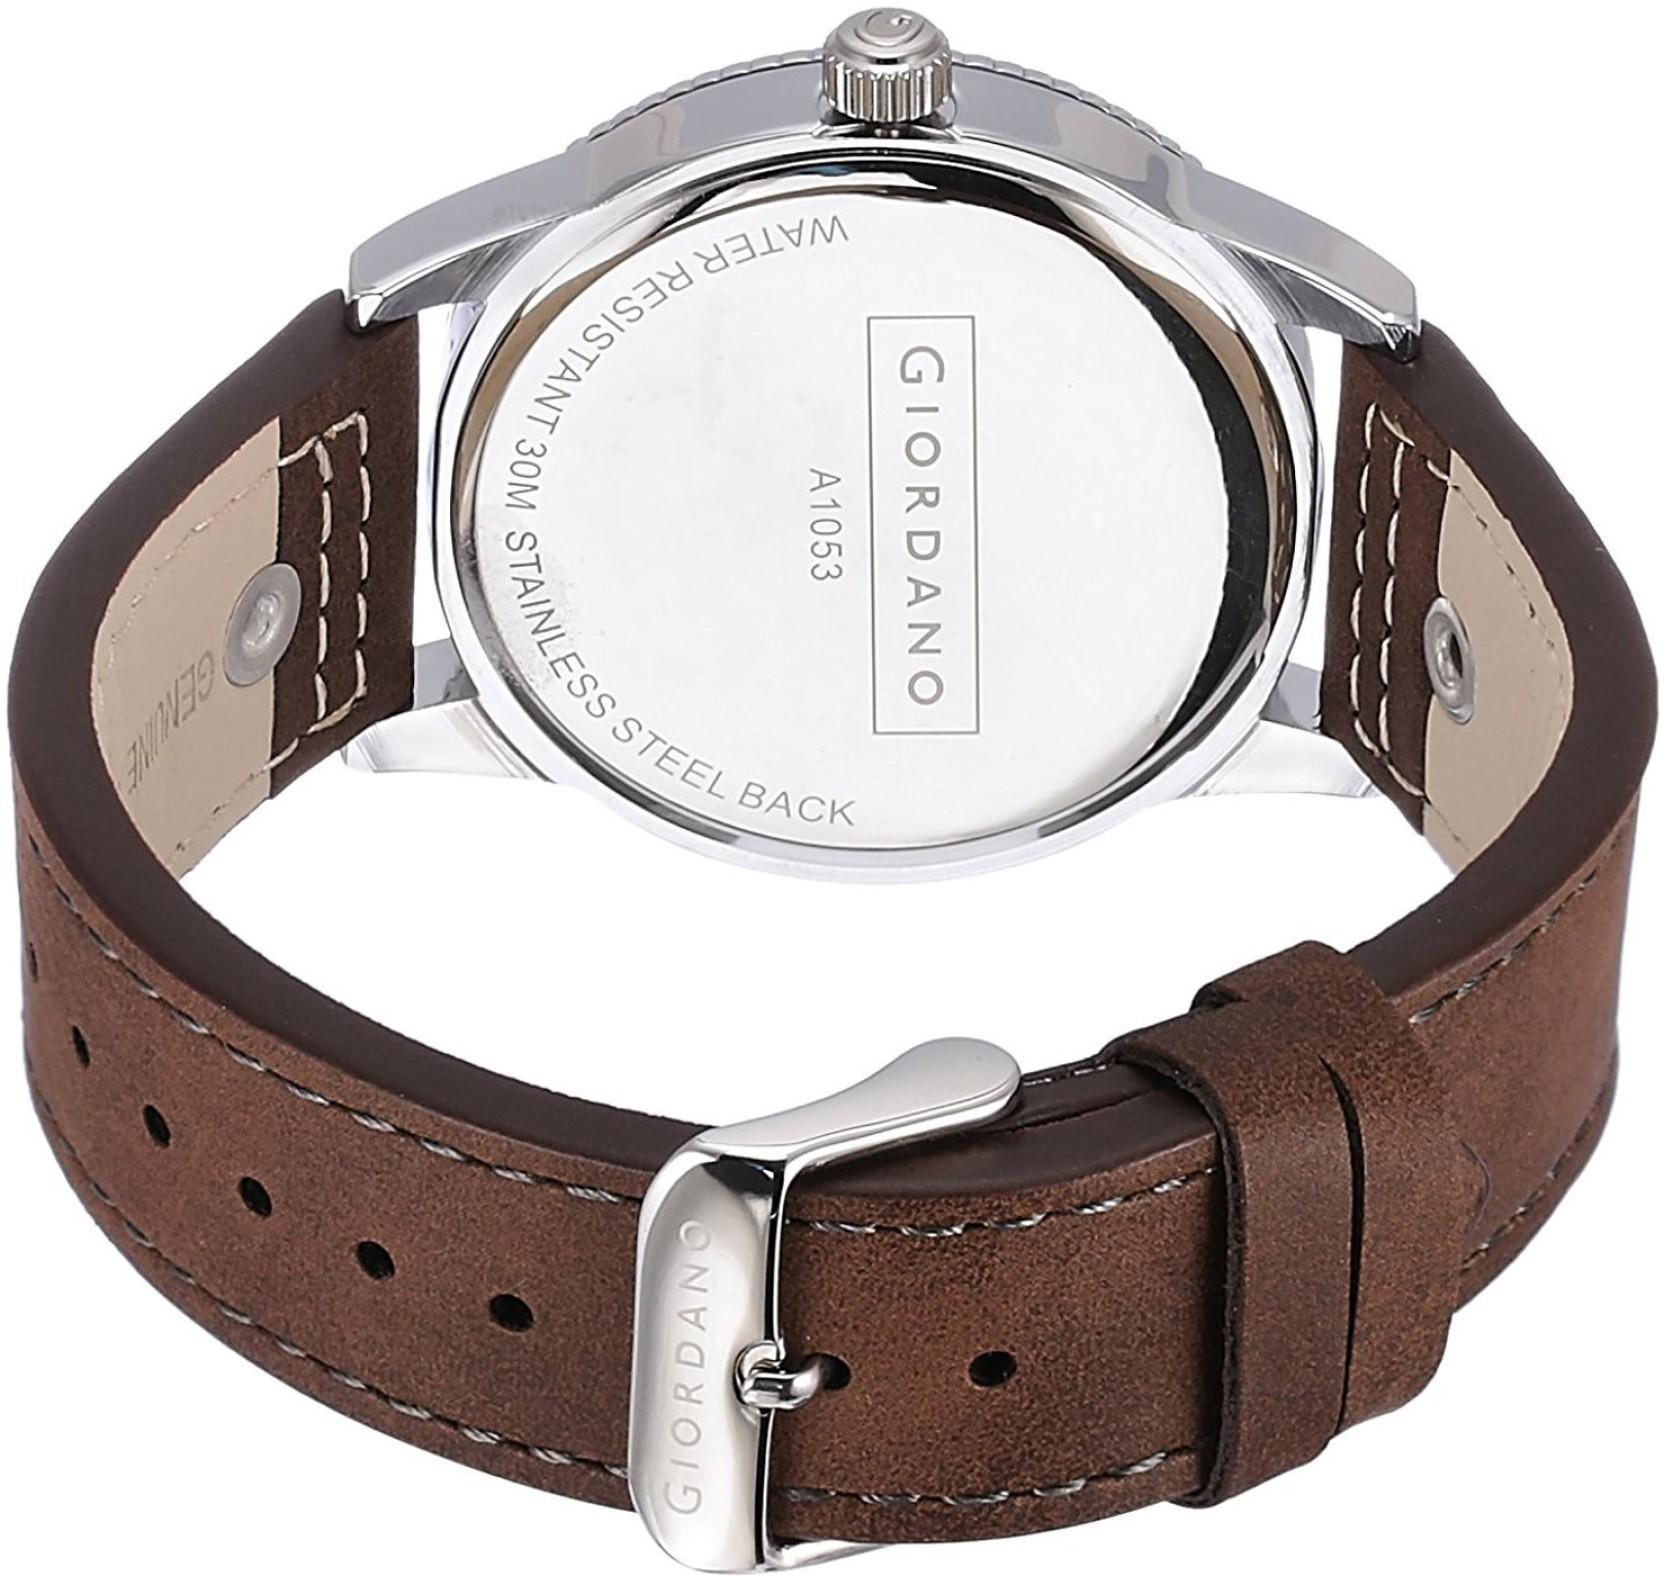 Giordano A1053-05 Watch - For Men